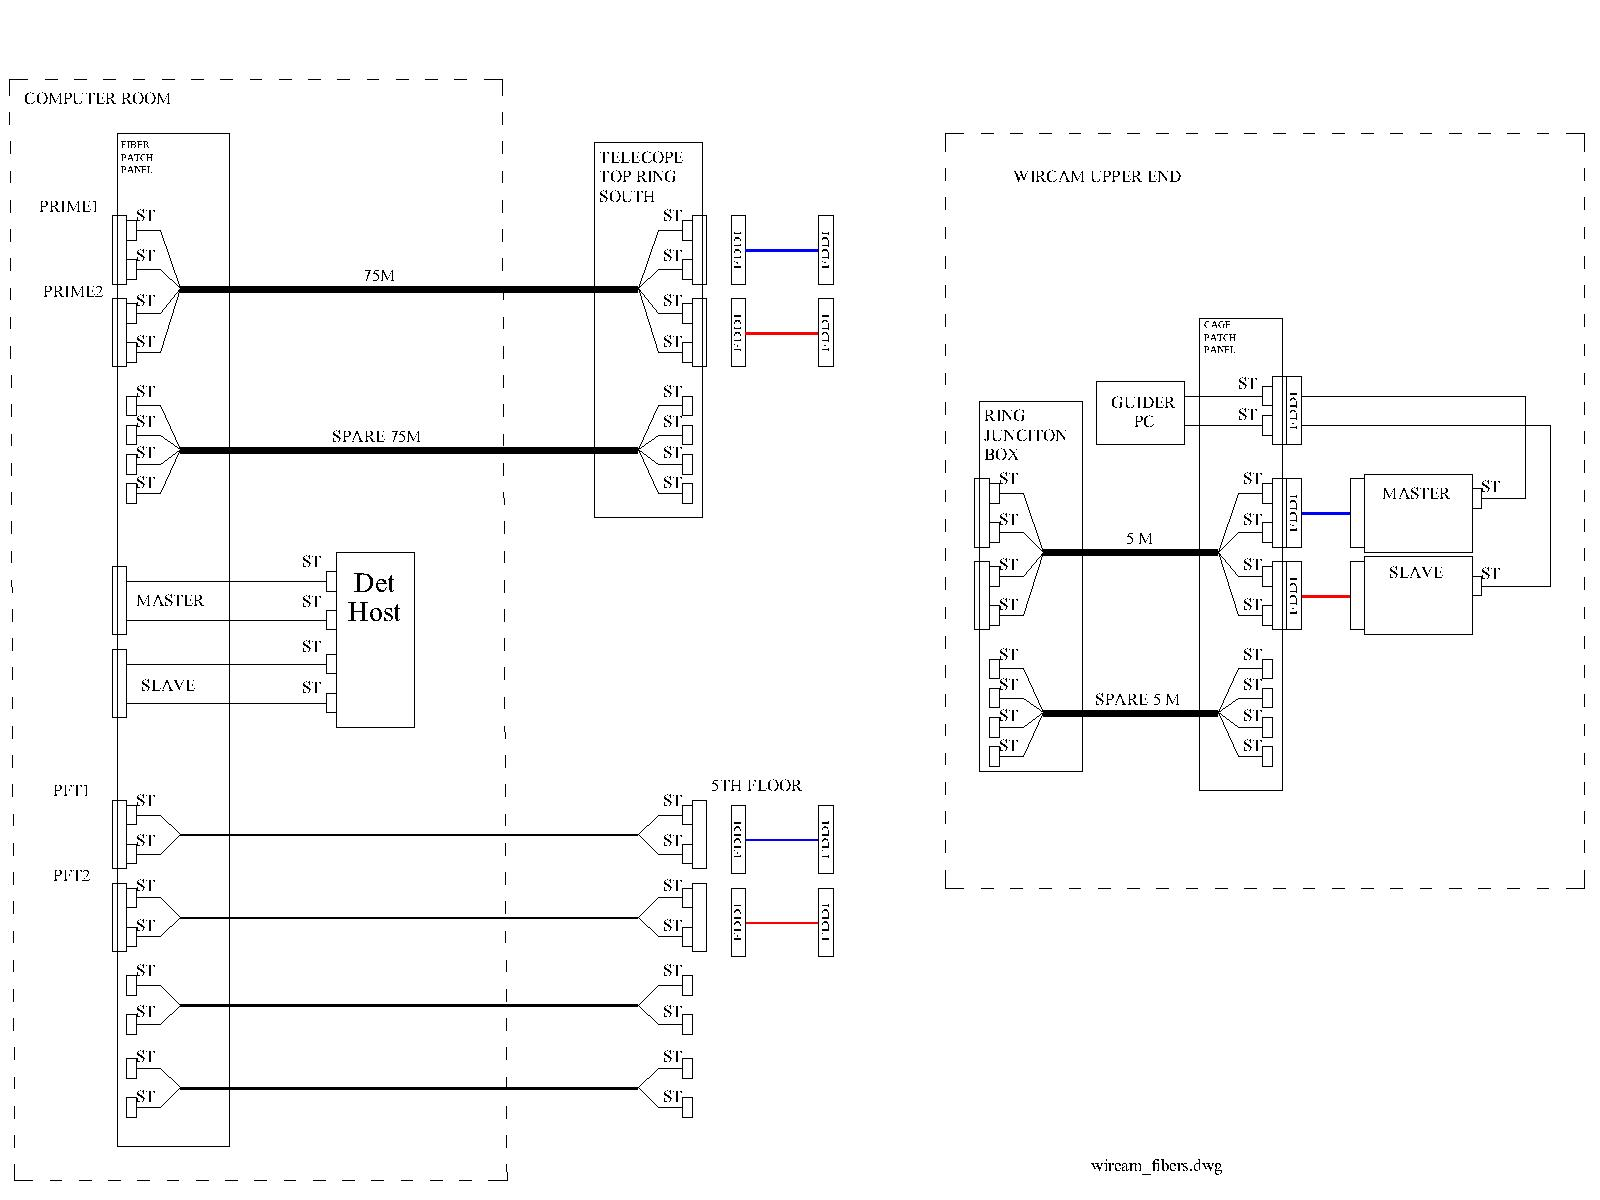 Wiring Diagram In Autocad Wircam Environment Fiber Optics Cabling